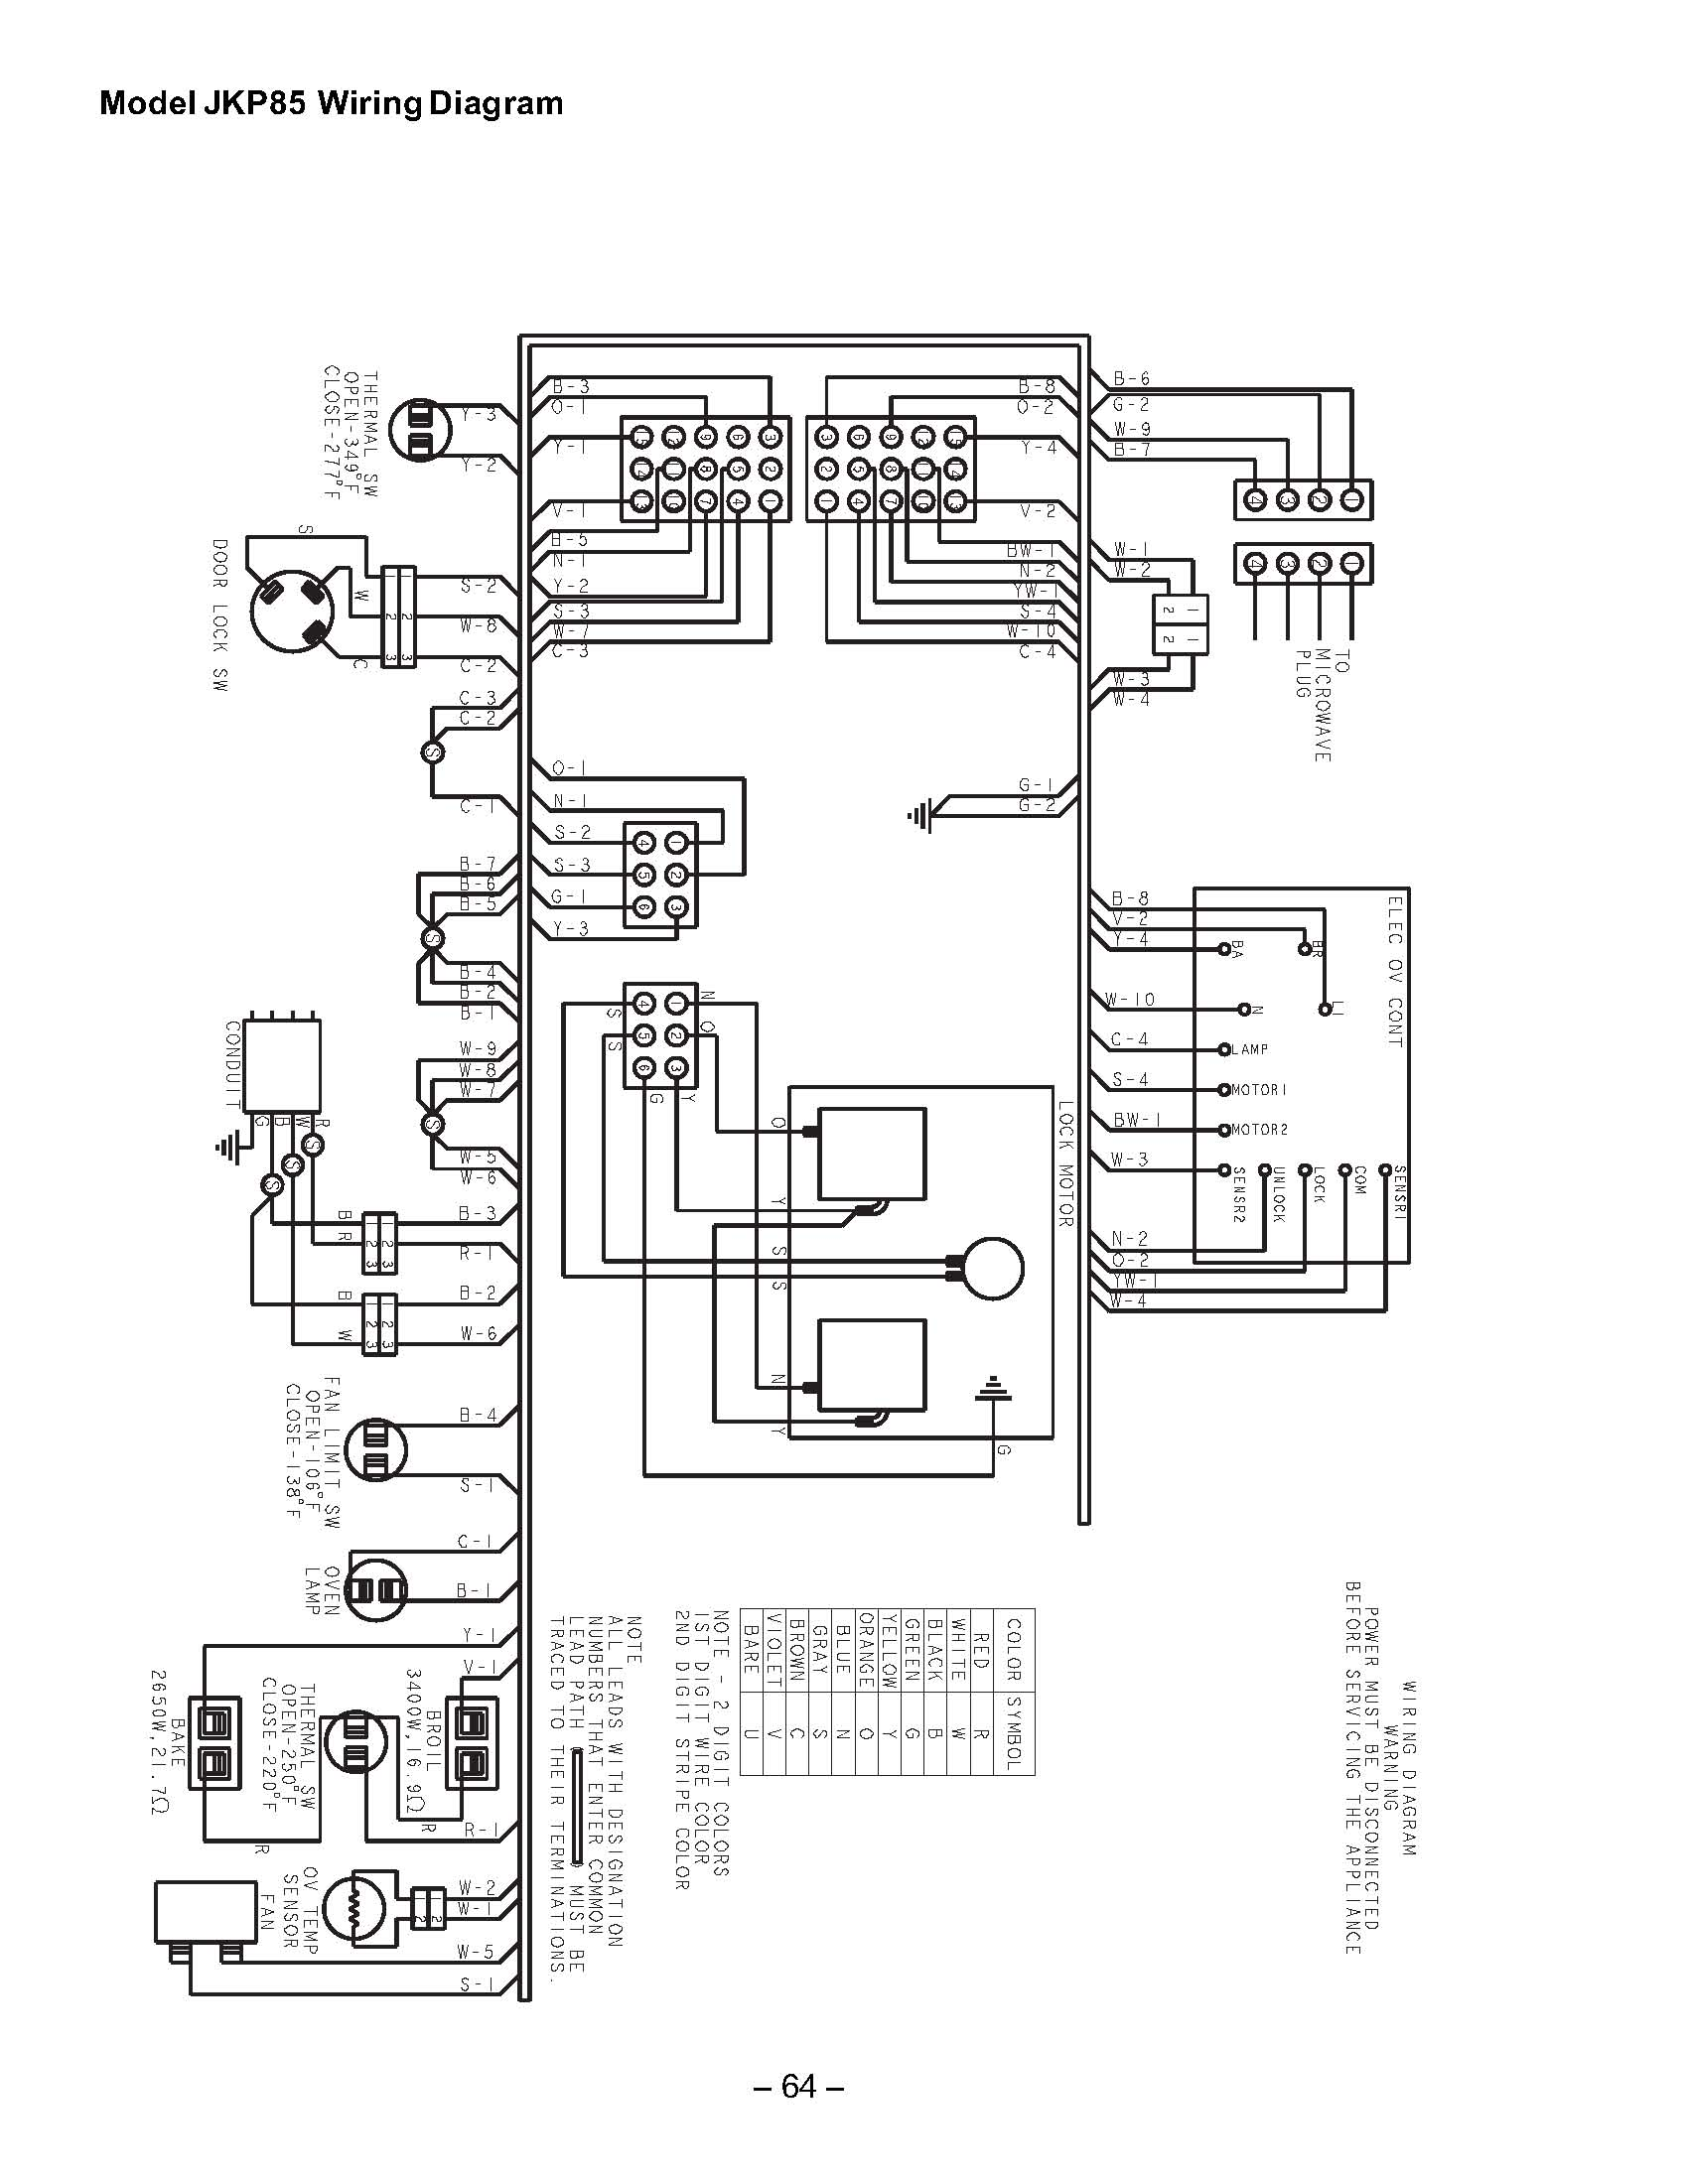 Gn90 Wiring Diagramwiring 2011 Jeep Wrangler Schematic 04 22 120234 C Diagra Jkp90sm2ss Wall Ovenquality